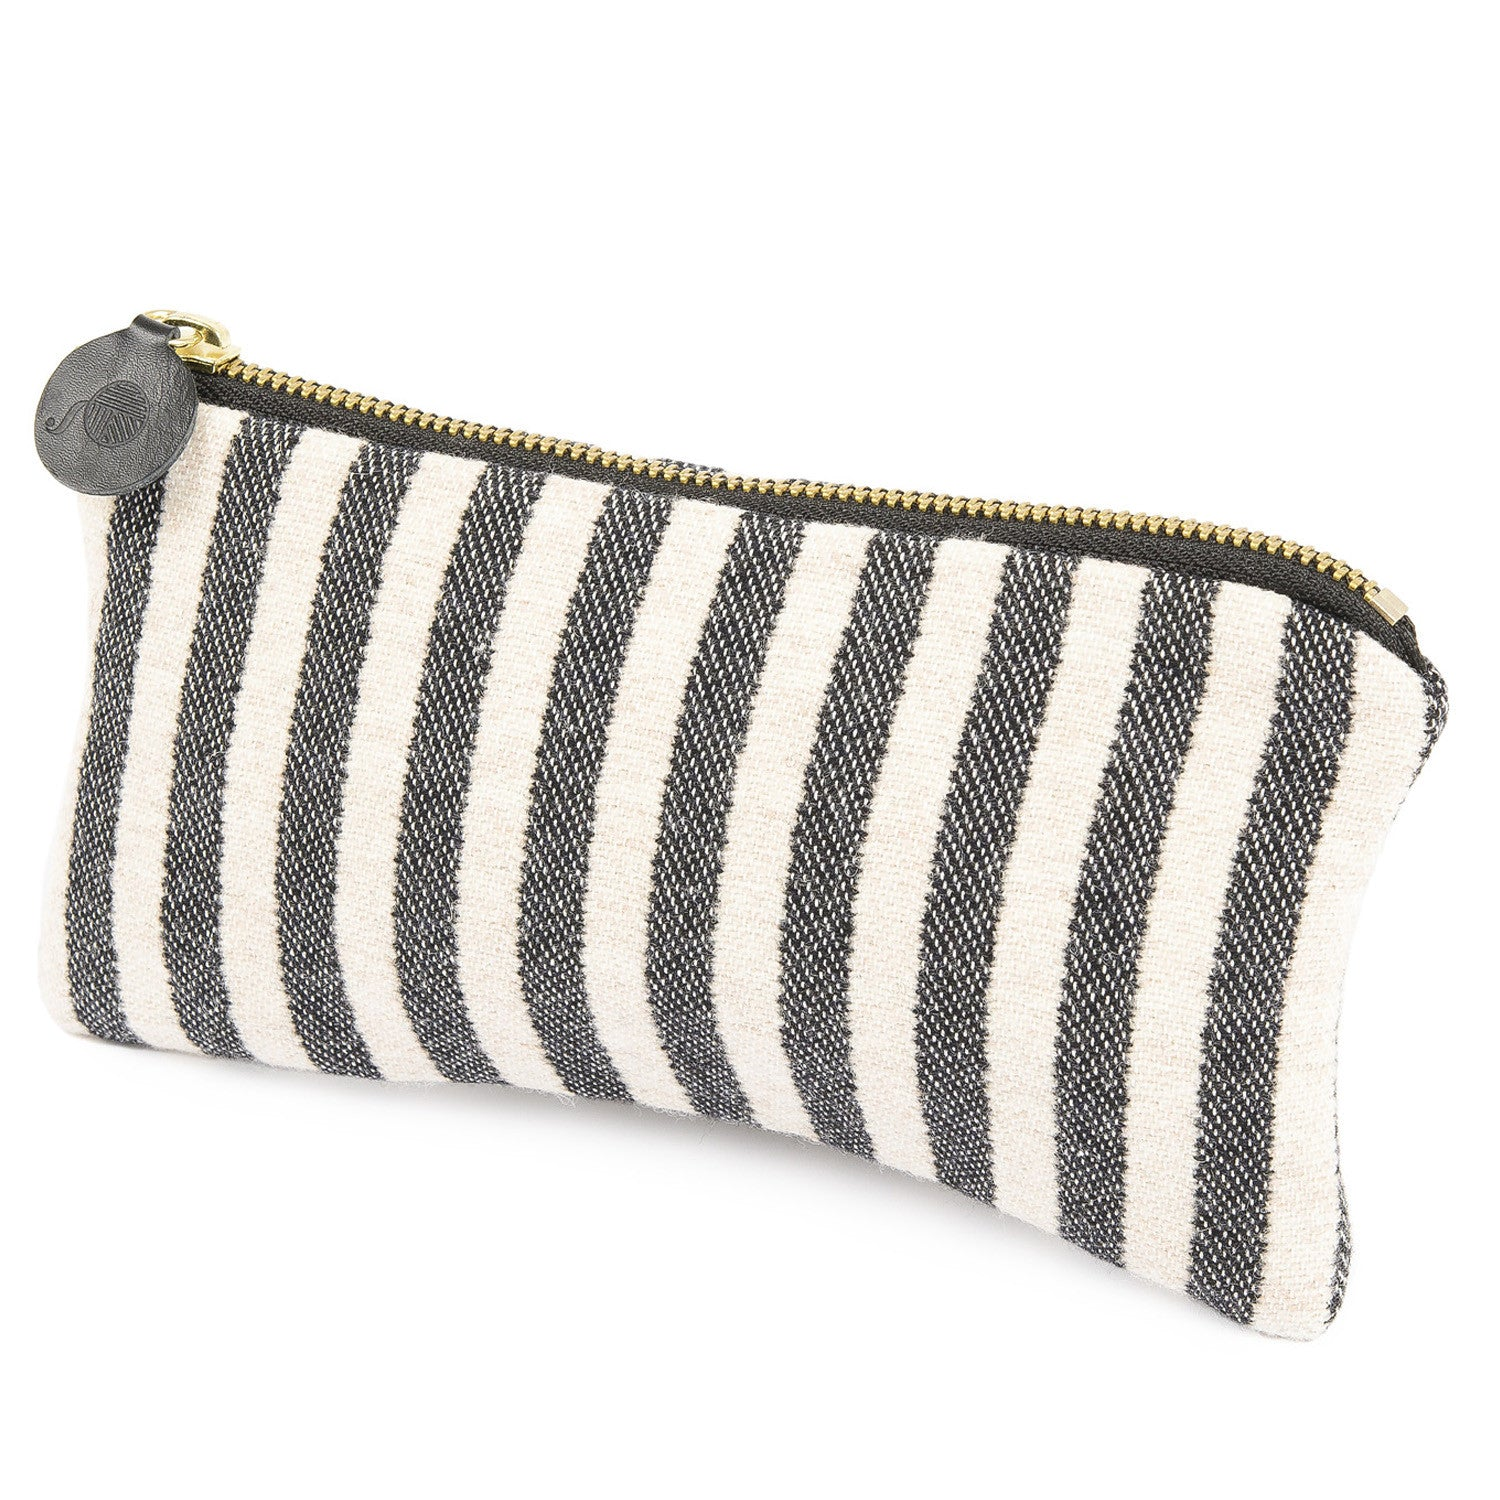 Merino Lambswool Zip Purse - Harbour Stripe Graphite & Ecru - Tori Murphy Ltd